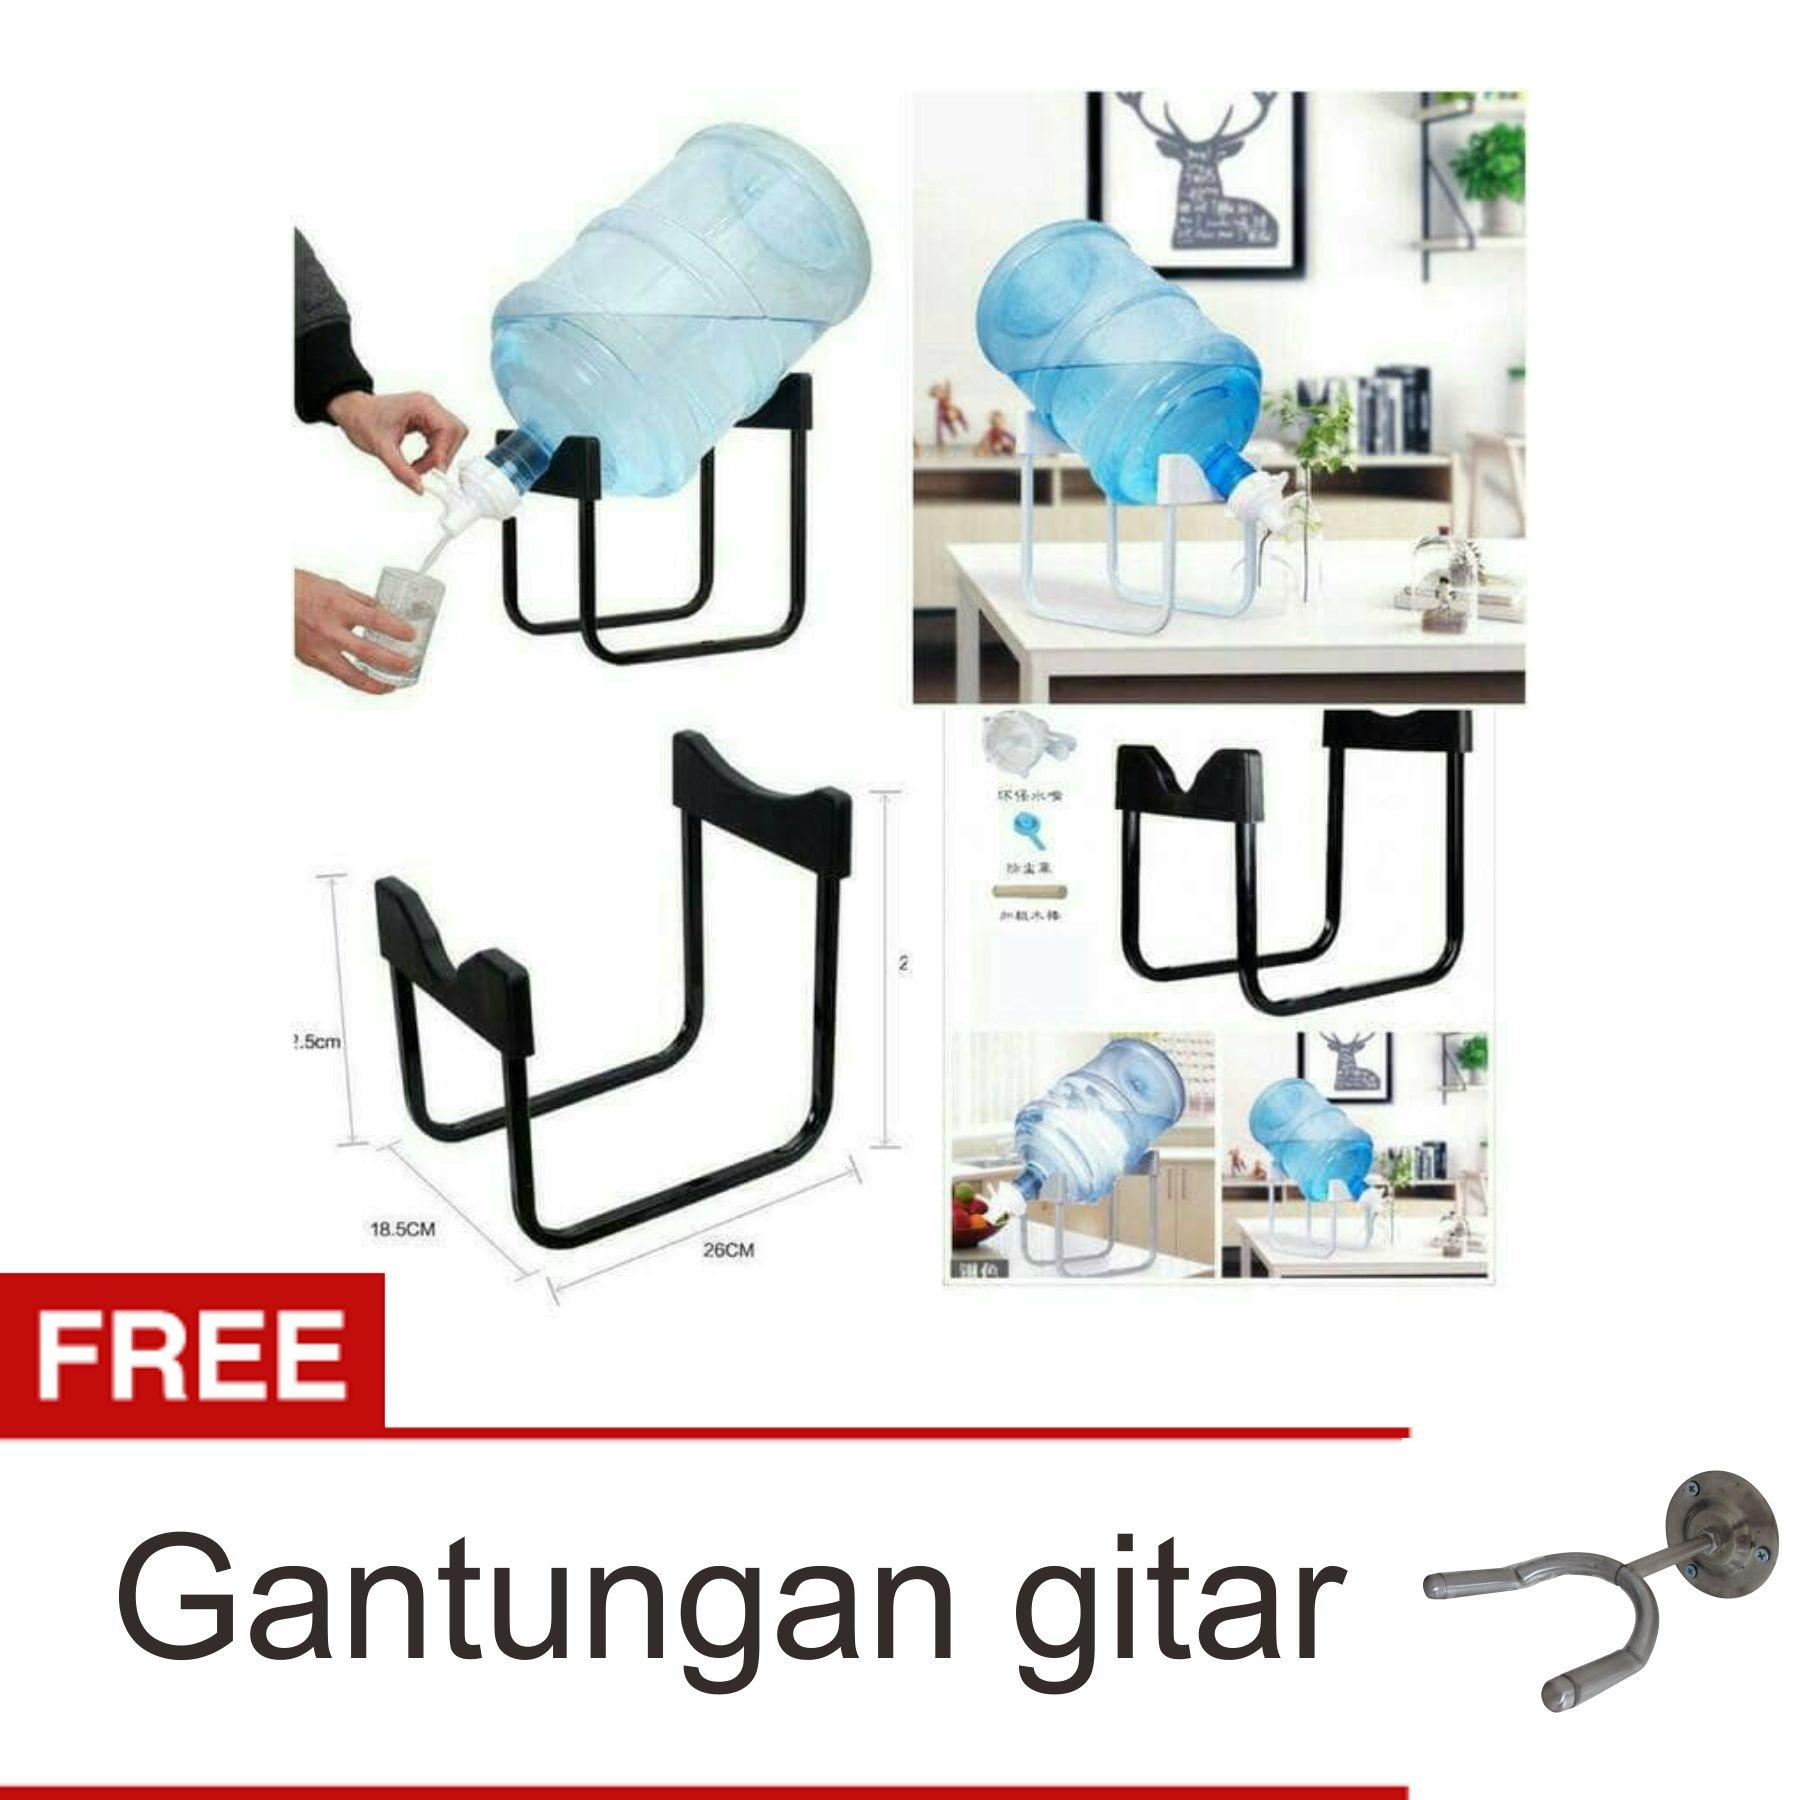 Lanjarjaya Rak Galon Tatakan Galon + Kran Air Galon / Dispenser Air Galon / Dispenser Minuman / Tatakan Aqua / Rak Besi Warna Random + Gantungan Gitar